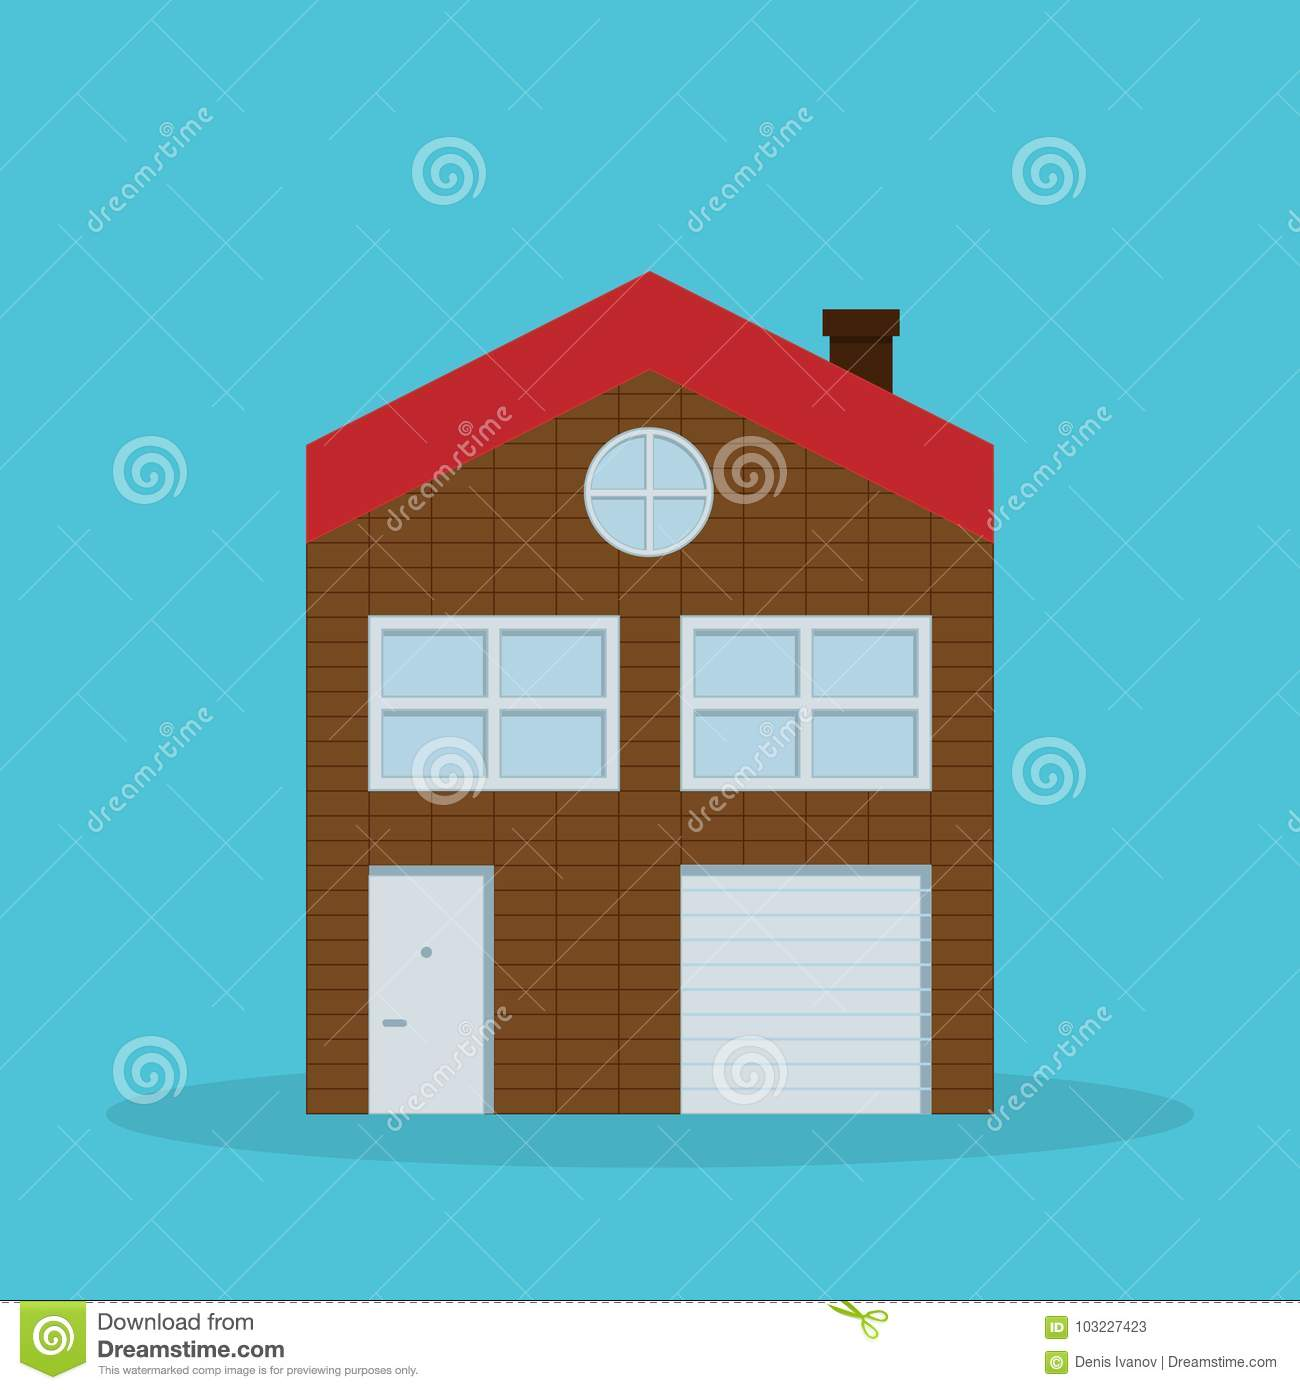 Home Flat Icon Vector.flat Design House Of Brick Stock Vector ... Flat Design House Home on 3 bed design, flat pool, flat flowers, flat furniture, flat lighting, 2 bedroom design, flat space, flat chair, roofing style roof design, flat wall, lodge design, flat painting, flat decor, flat art, flat storage, flat kitchen, bungalow design, apartment design, flat houses in trinidad, flat photography,